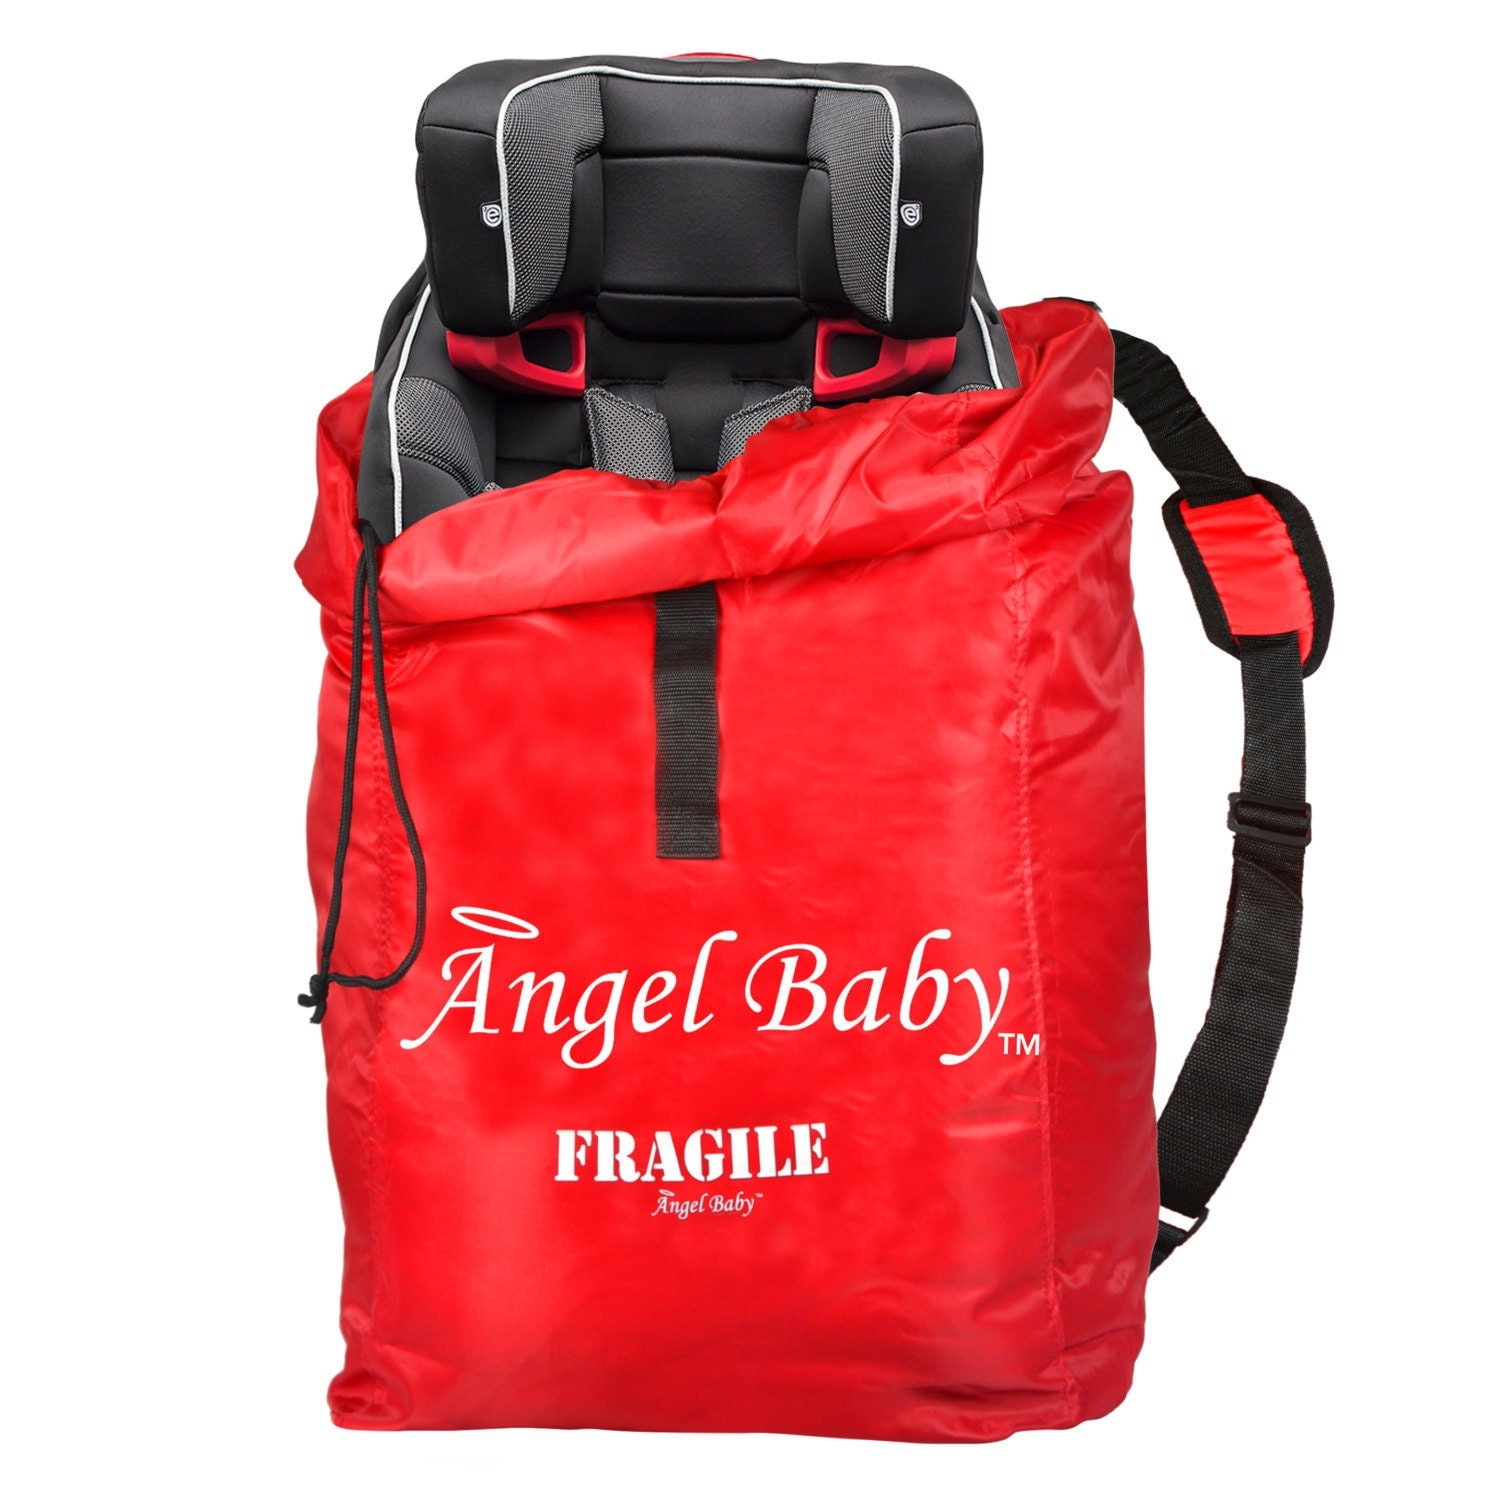 car seat travel bag kids travel bag red car travel bag red. Black Bedroom Furniture Sets. Home Design Ideas